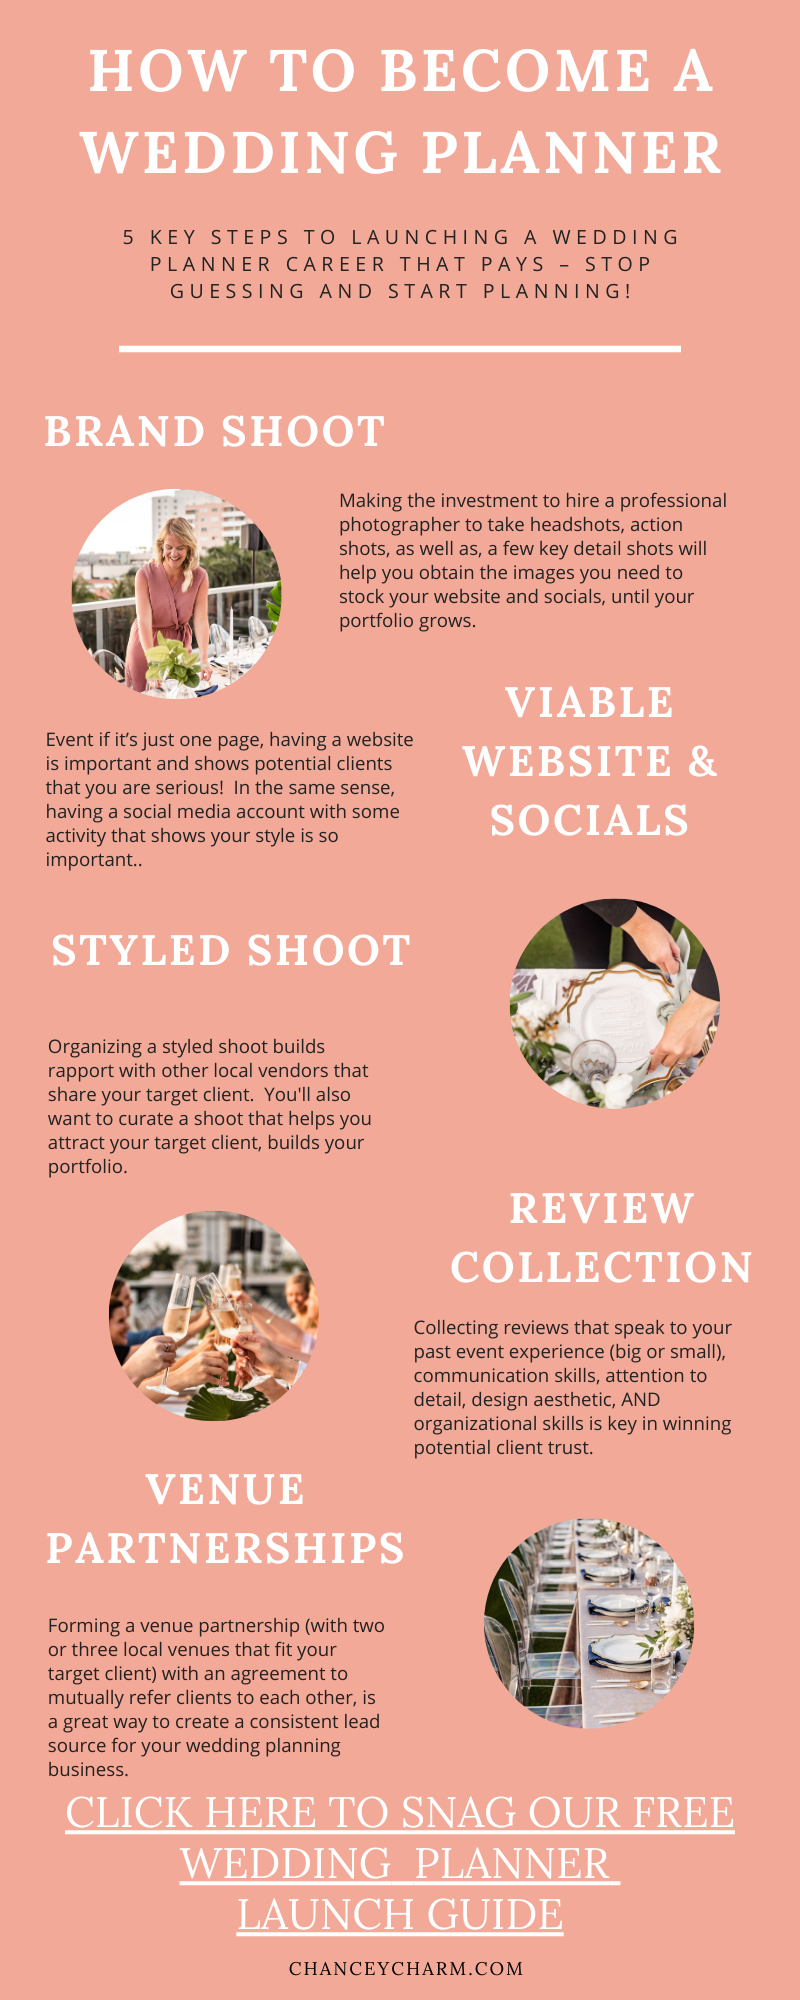 Learn How To Become A Wedding Planner Wedding Planner Academy In 2020 Wedding Planner Career Free Wedding Planner Wedding Planning Business